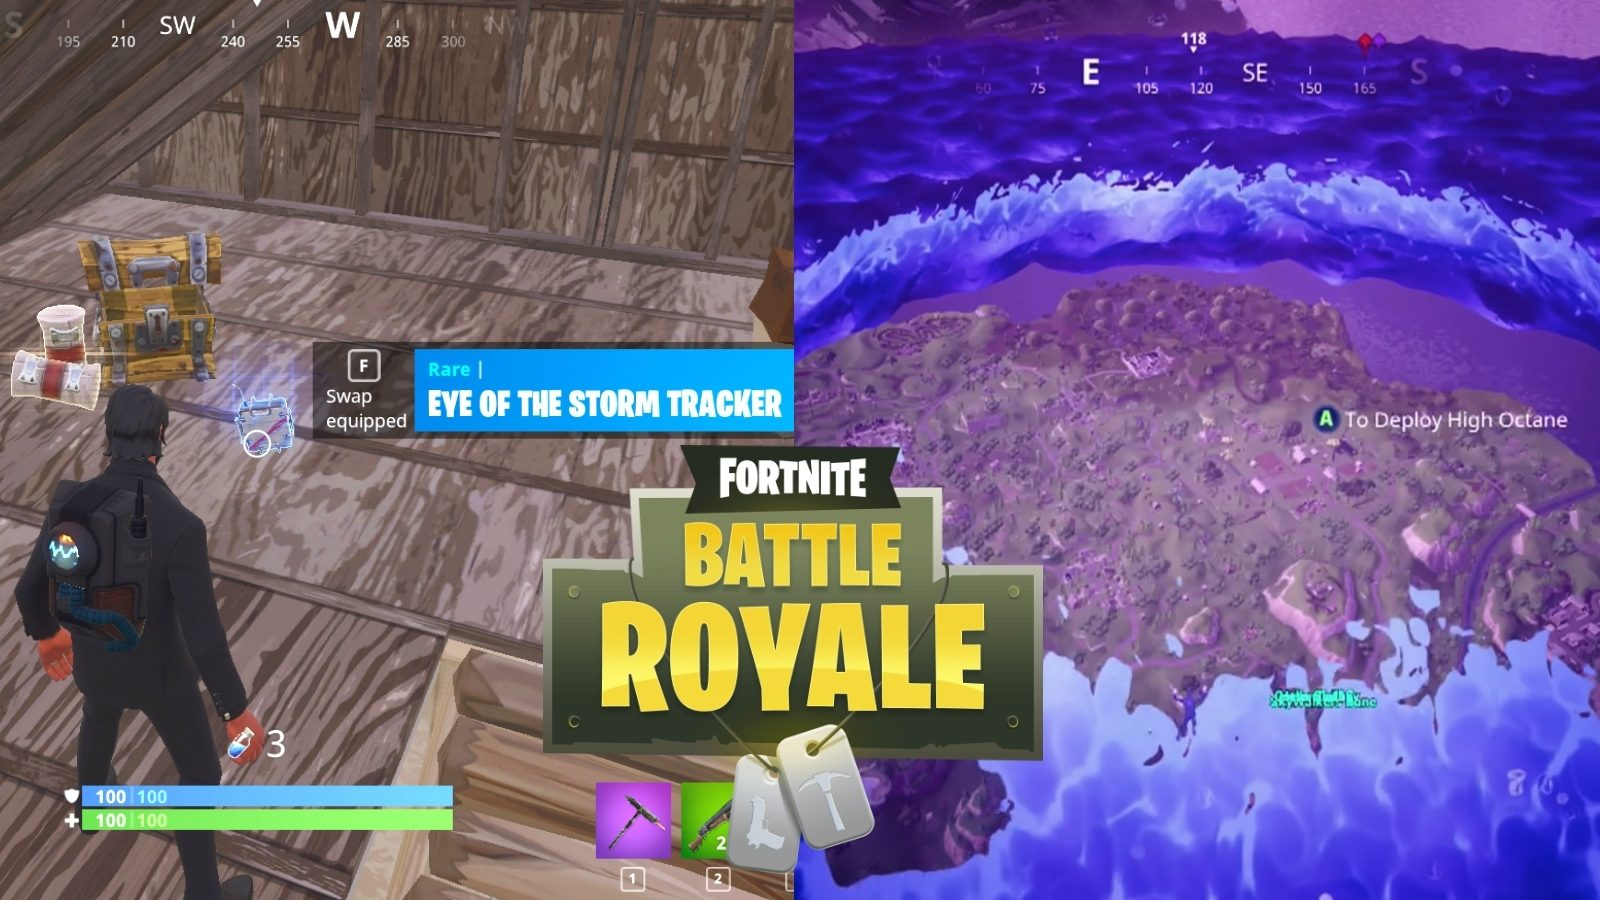 Epic Games Dev Says New Eye of The Storm Tracker Was 1600x900